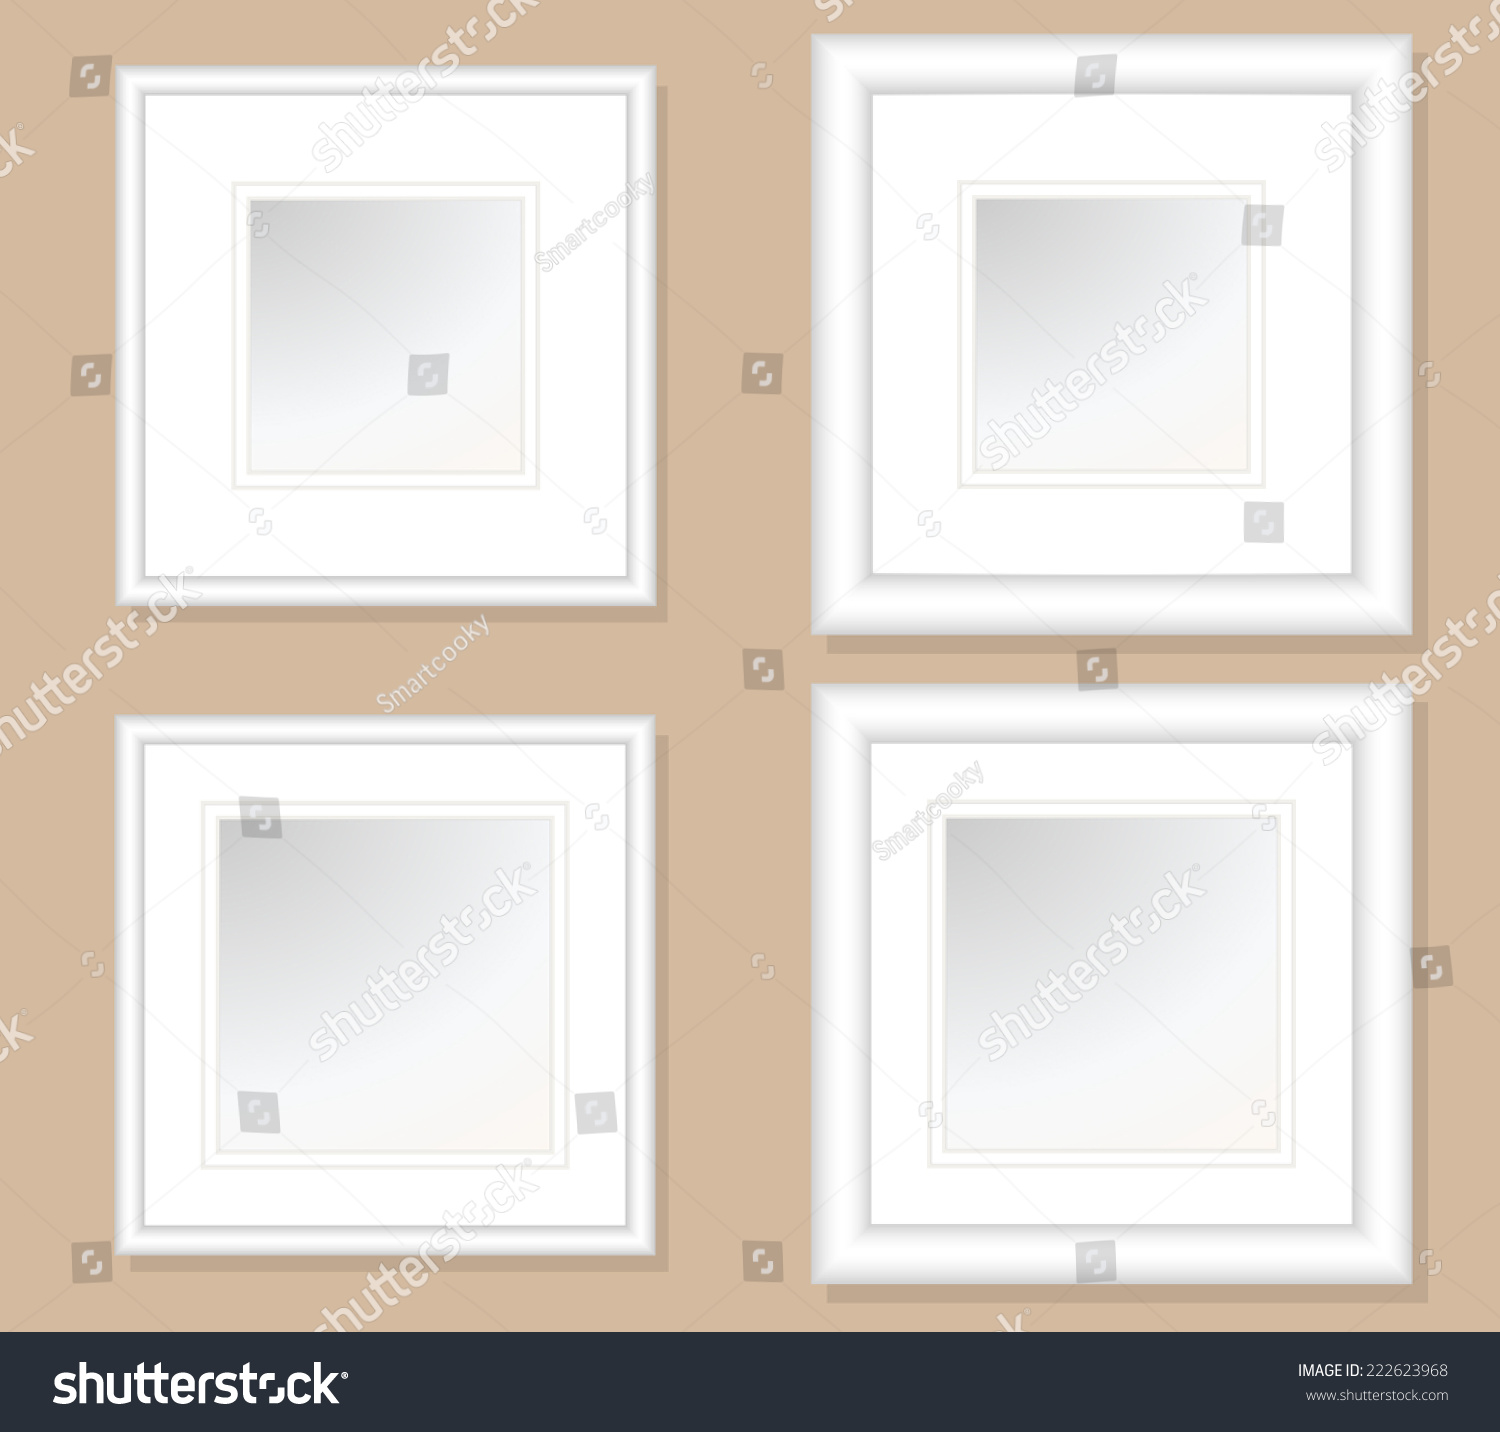 5 X 5 6 X 6 Square Photo Art Frames Stock Vector (Royalty Free ...